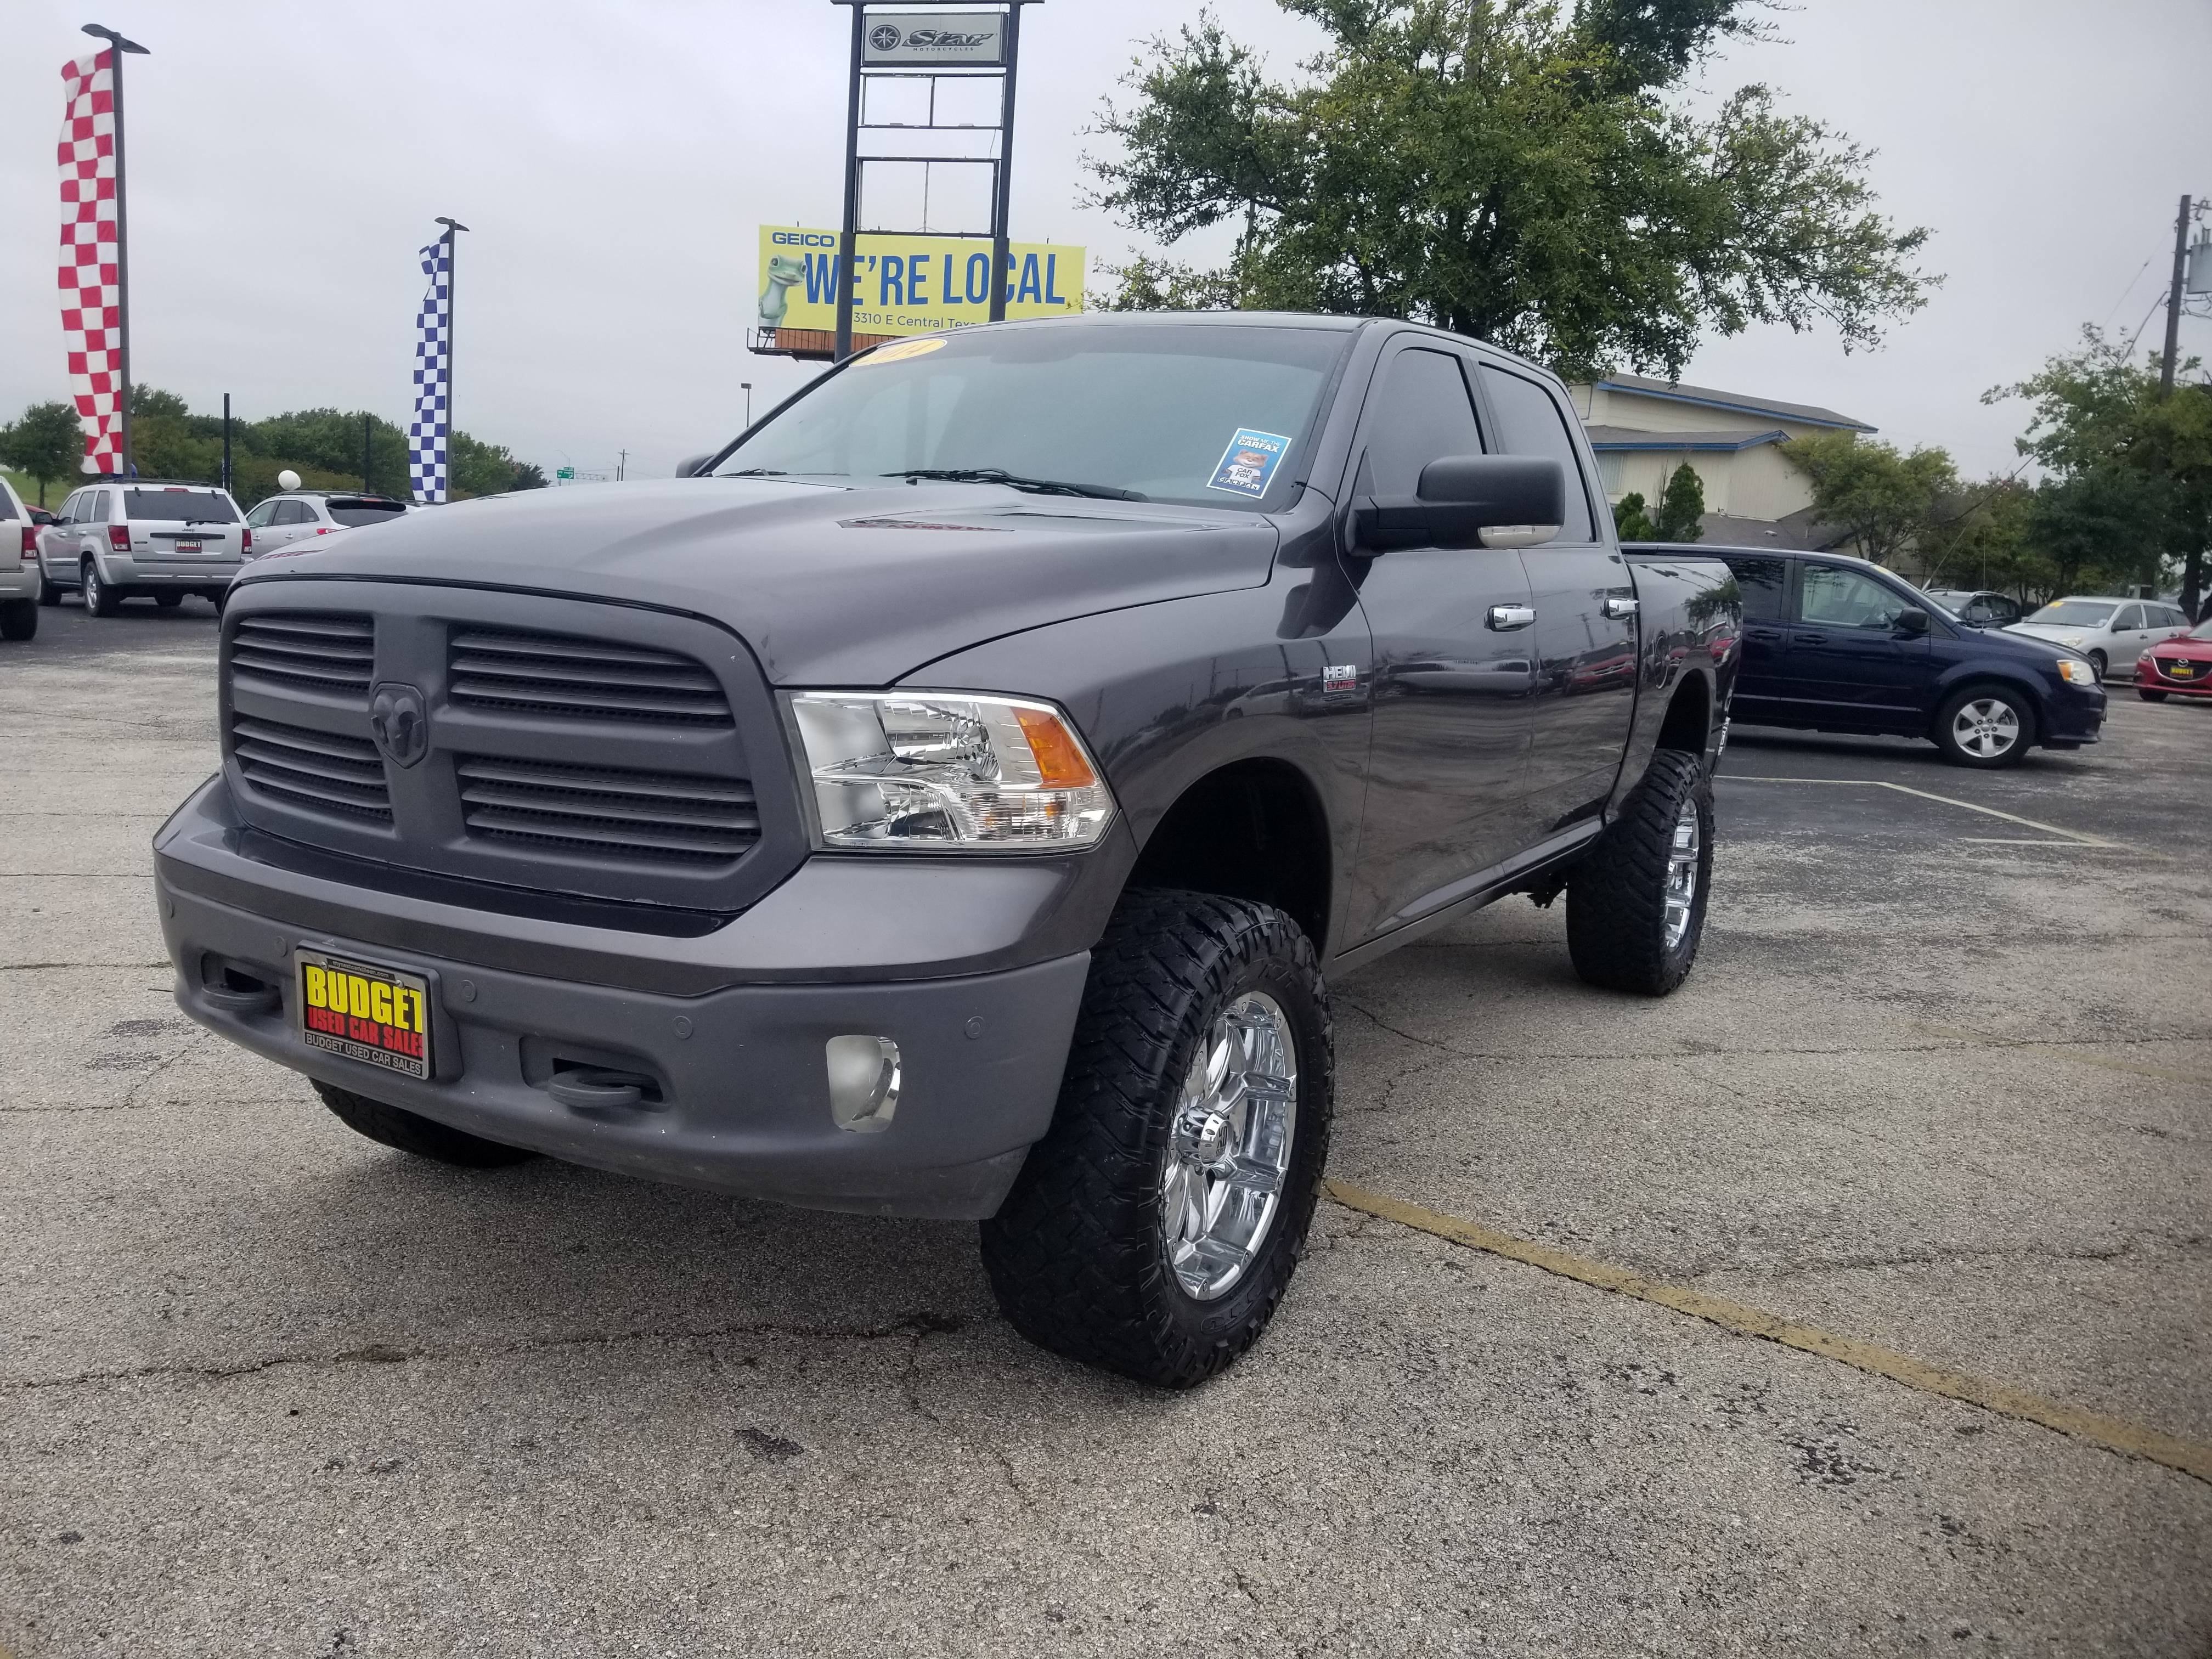 used vehicle - Truck Ram 1500 2014